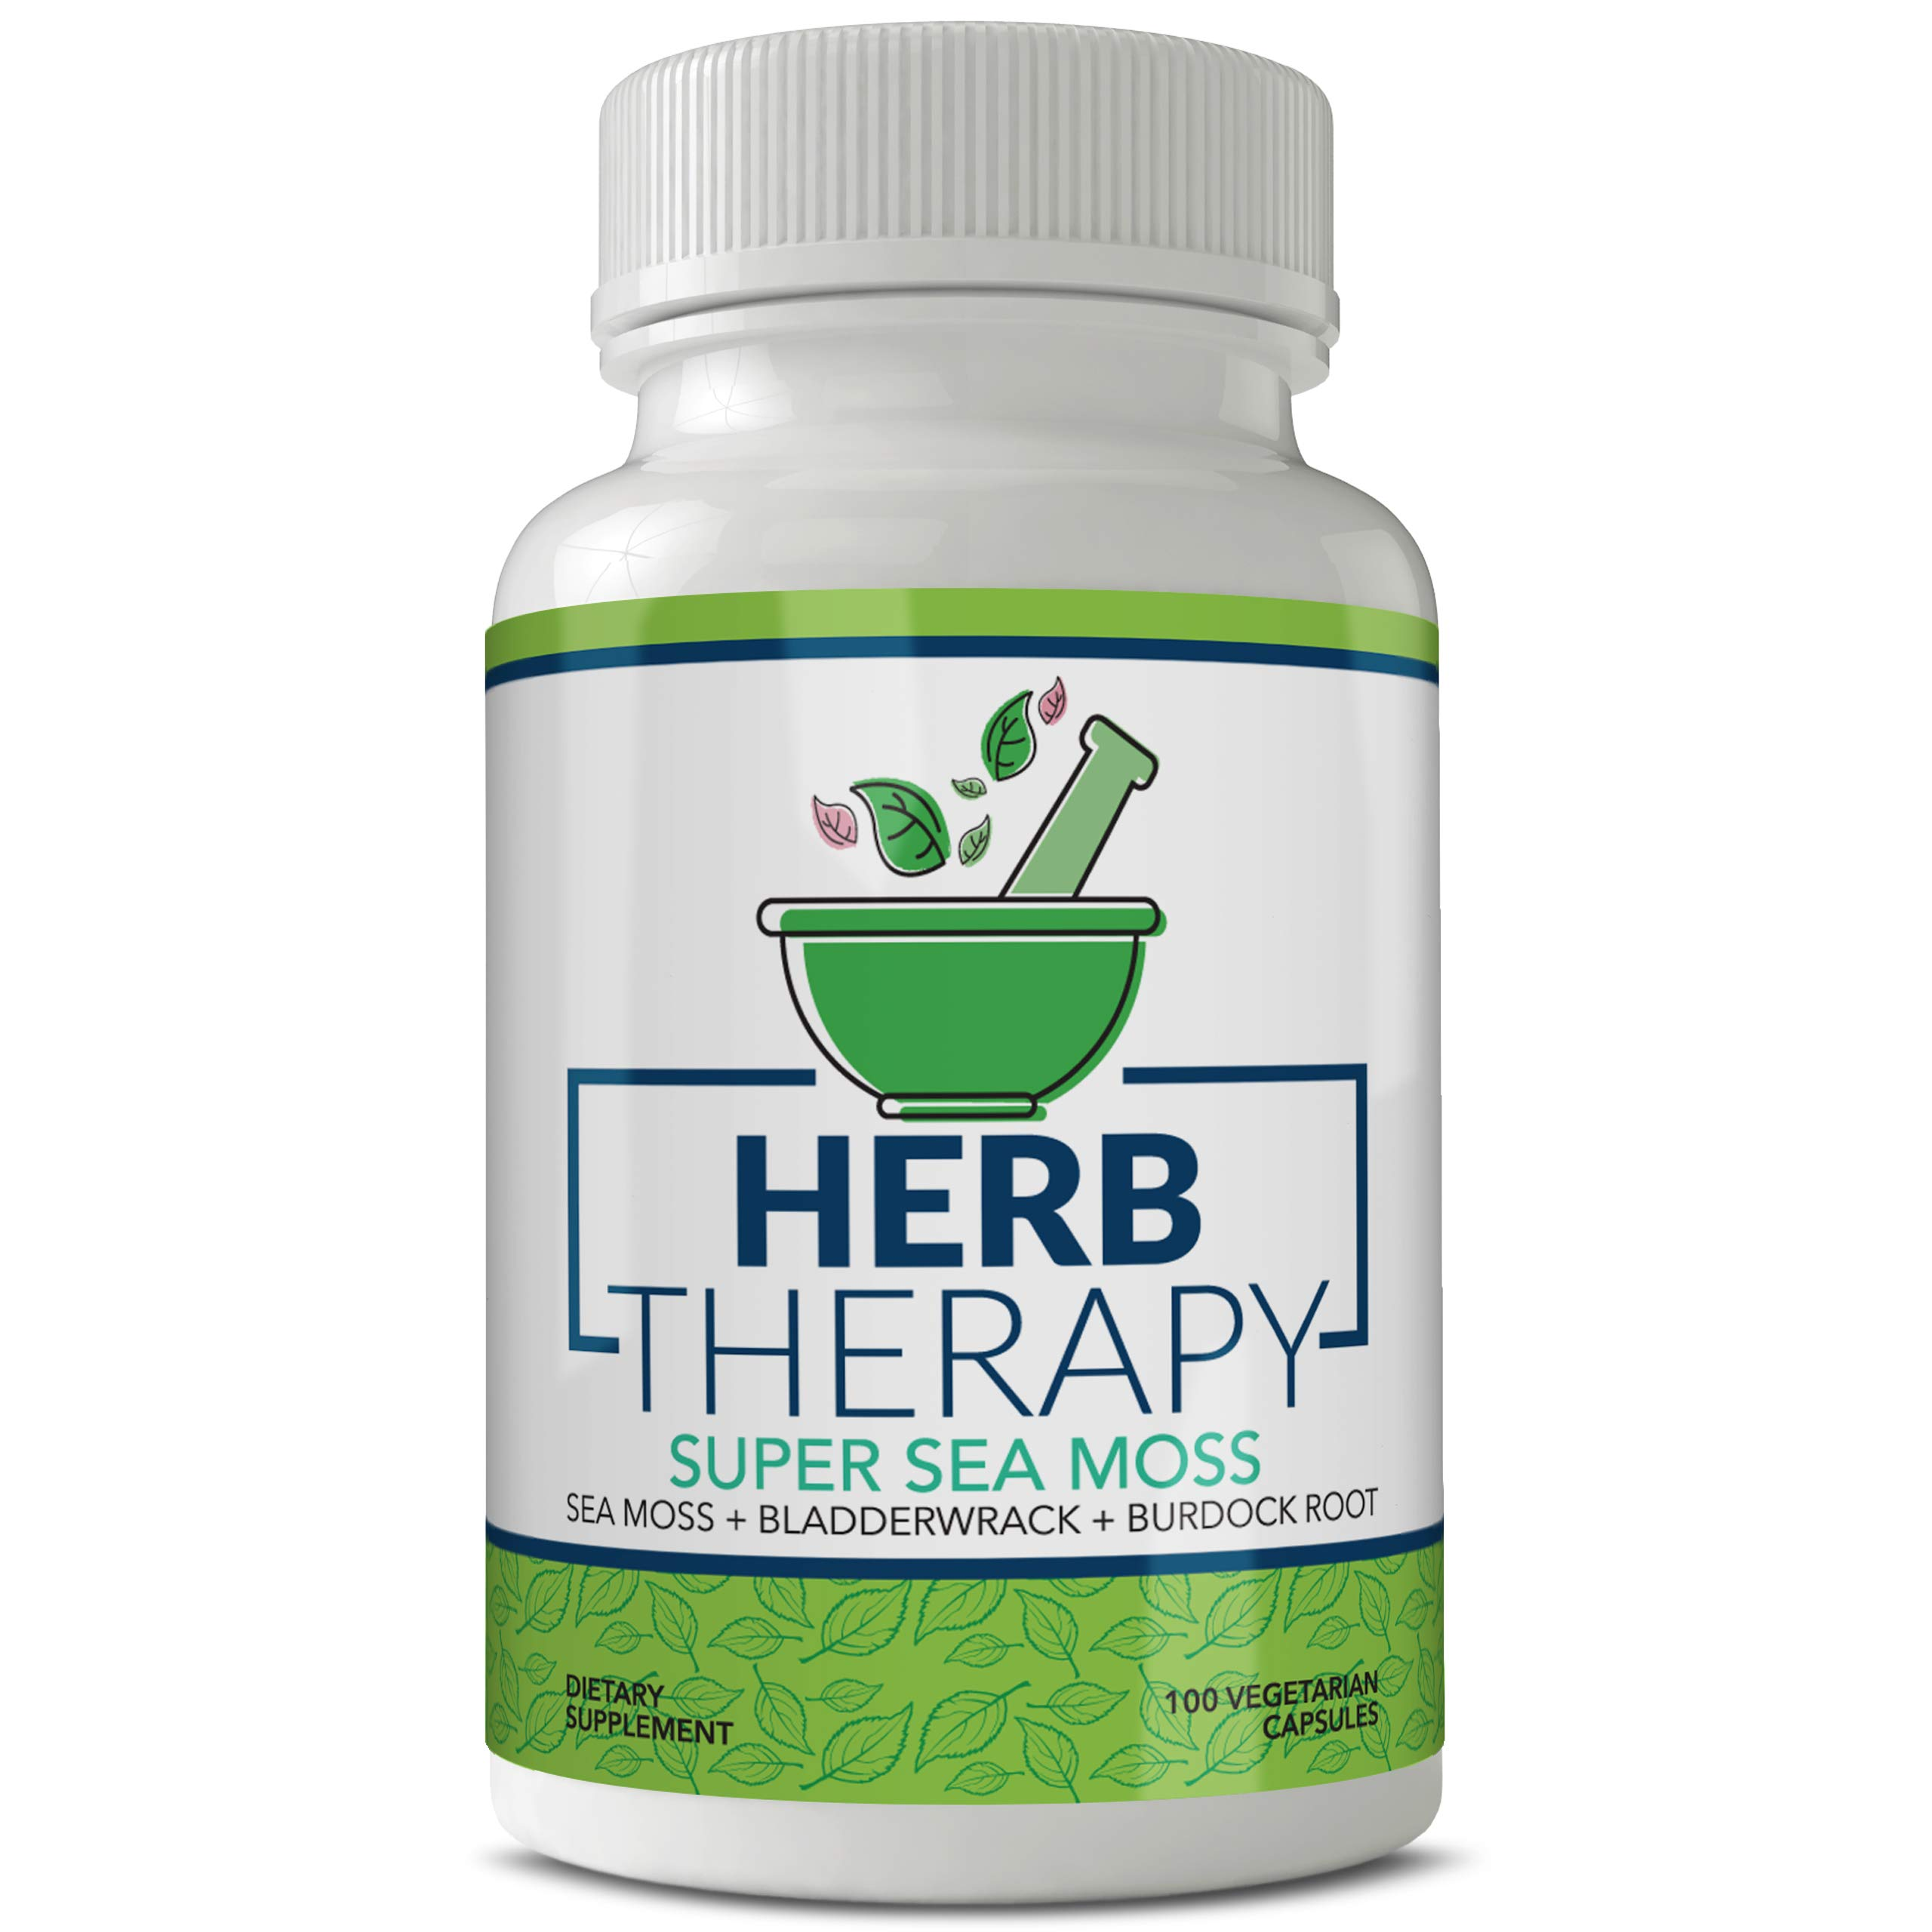 Herb Therapy Super Sea Moss Organic Irish Sea Moss Capsules (100ct) Organic Burdock Root Capsules, Sea Moss and Bladderwrack Capsules - No Fillers - Seamoss Raw Supplement